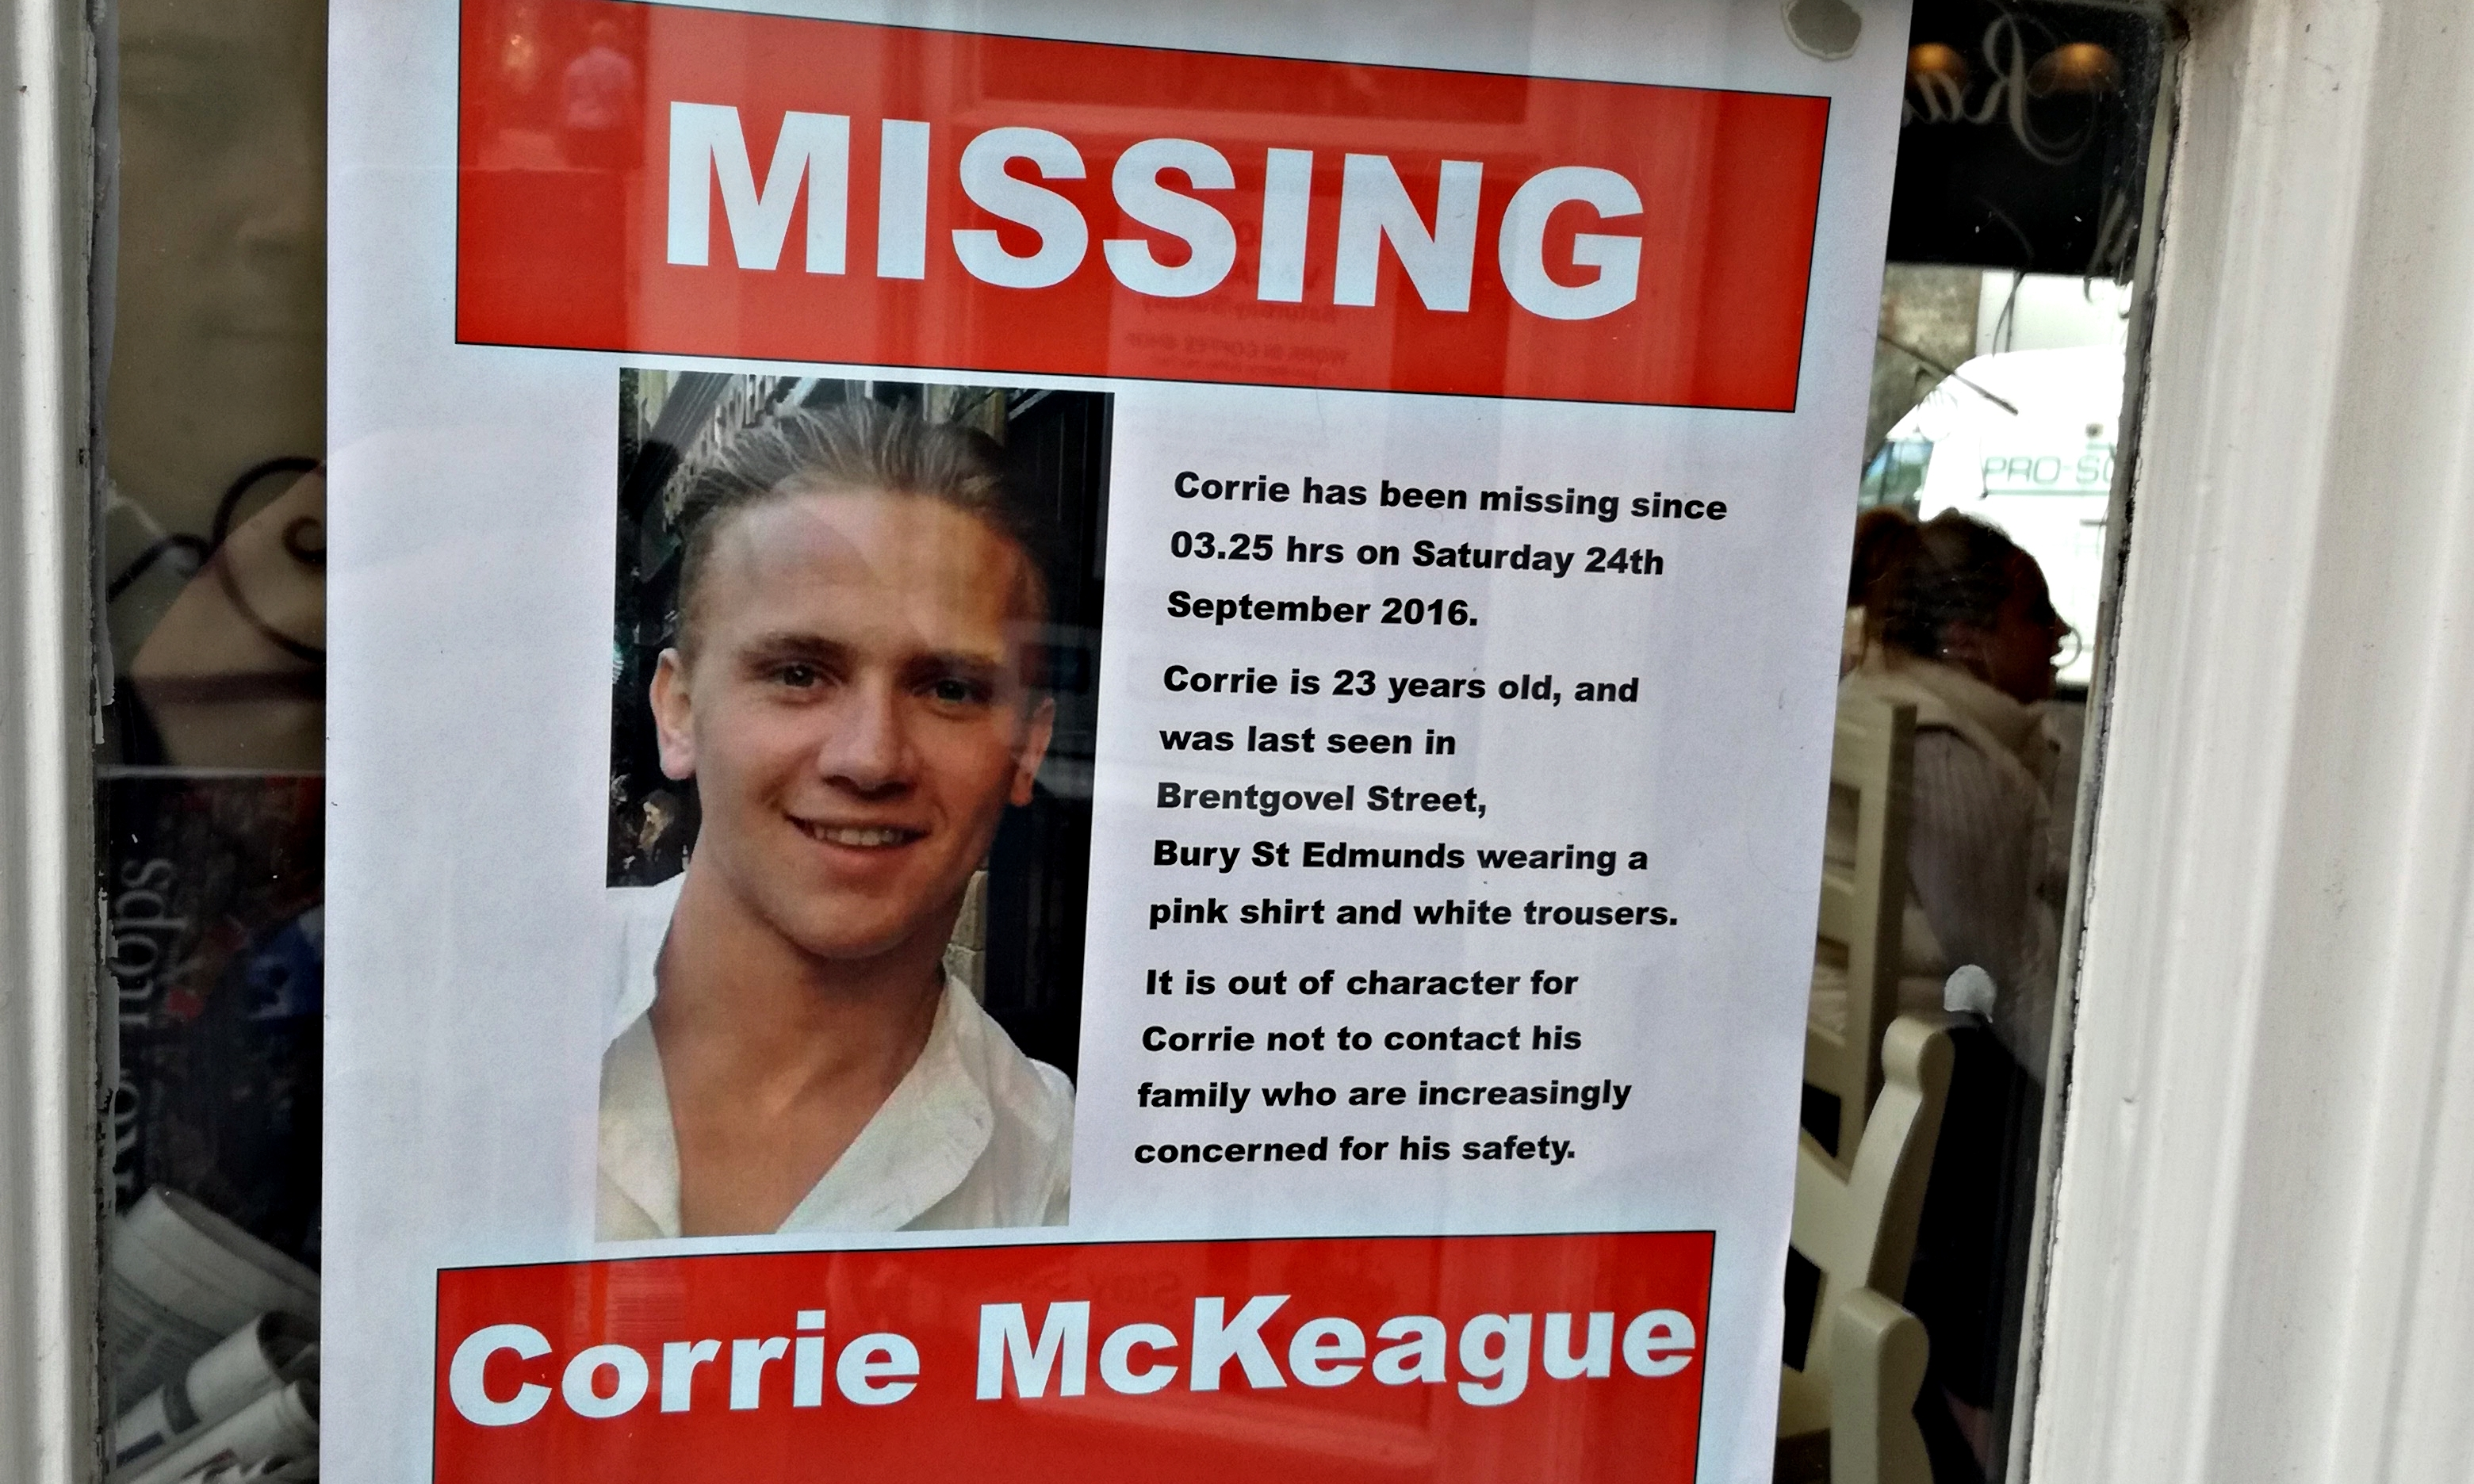 Bury St Edmunds has rallied together to help try and find missing Corrie.